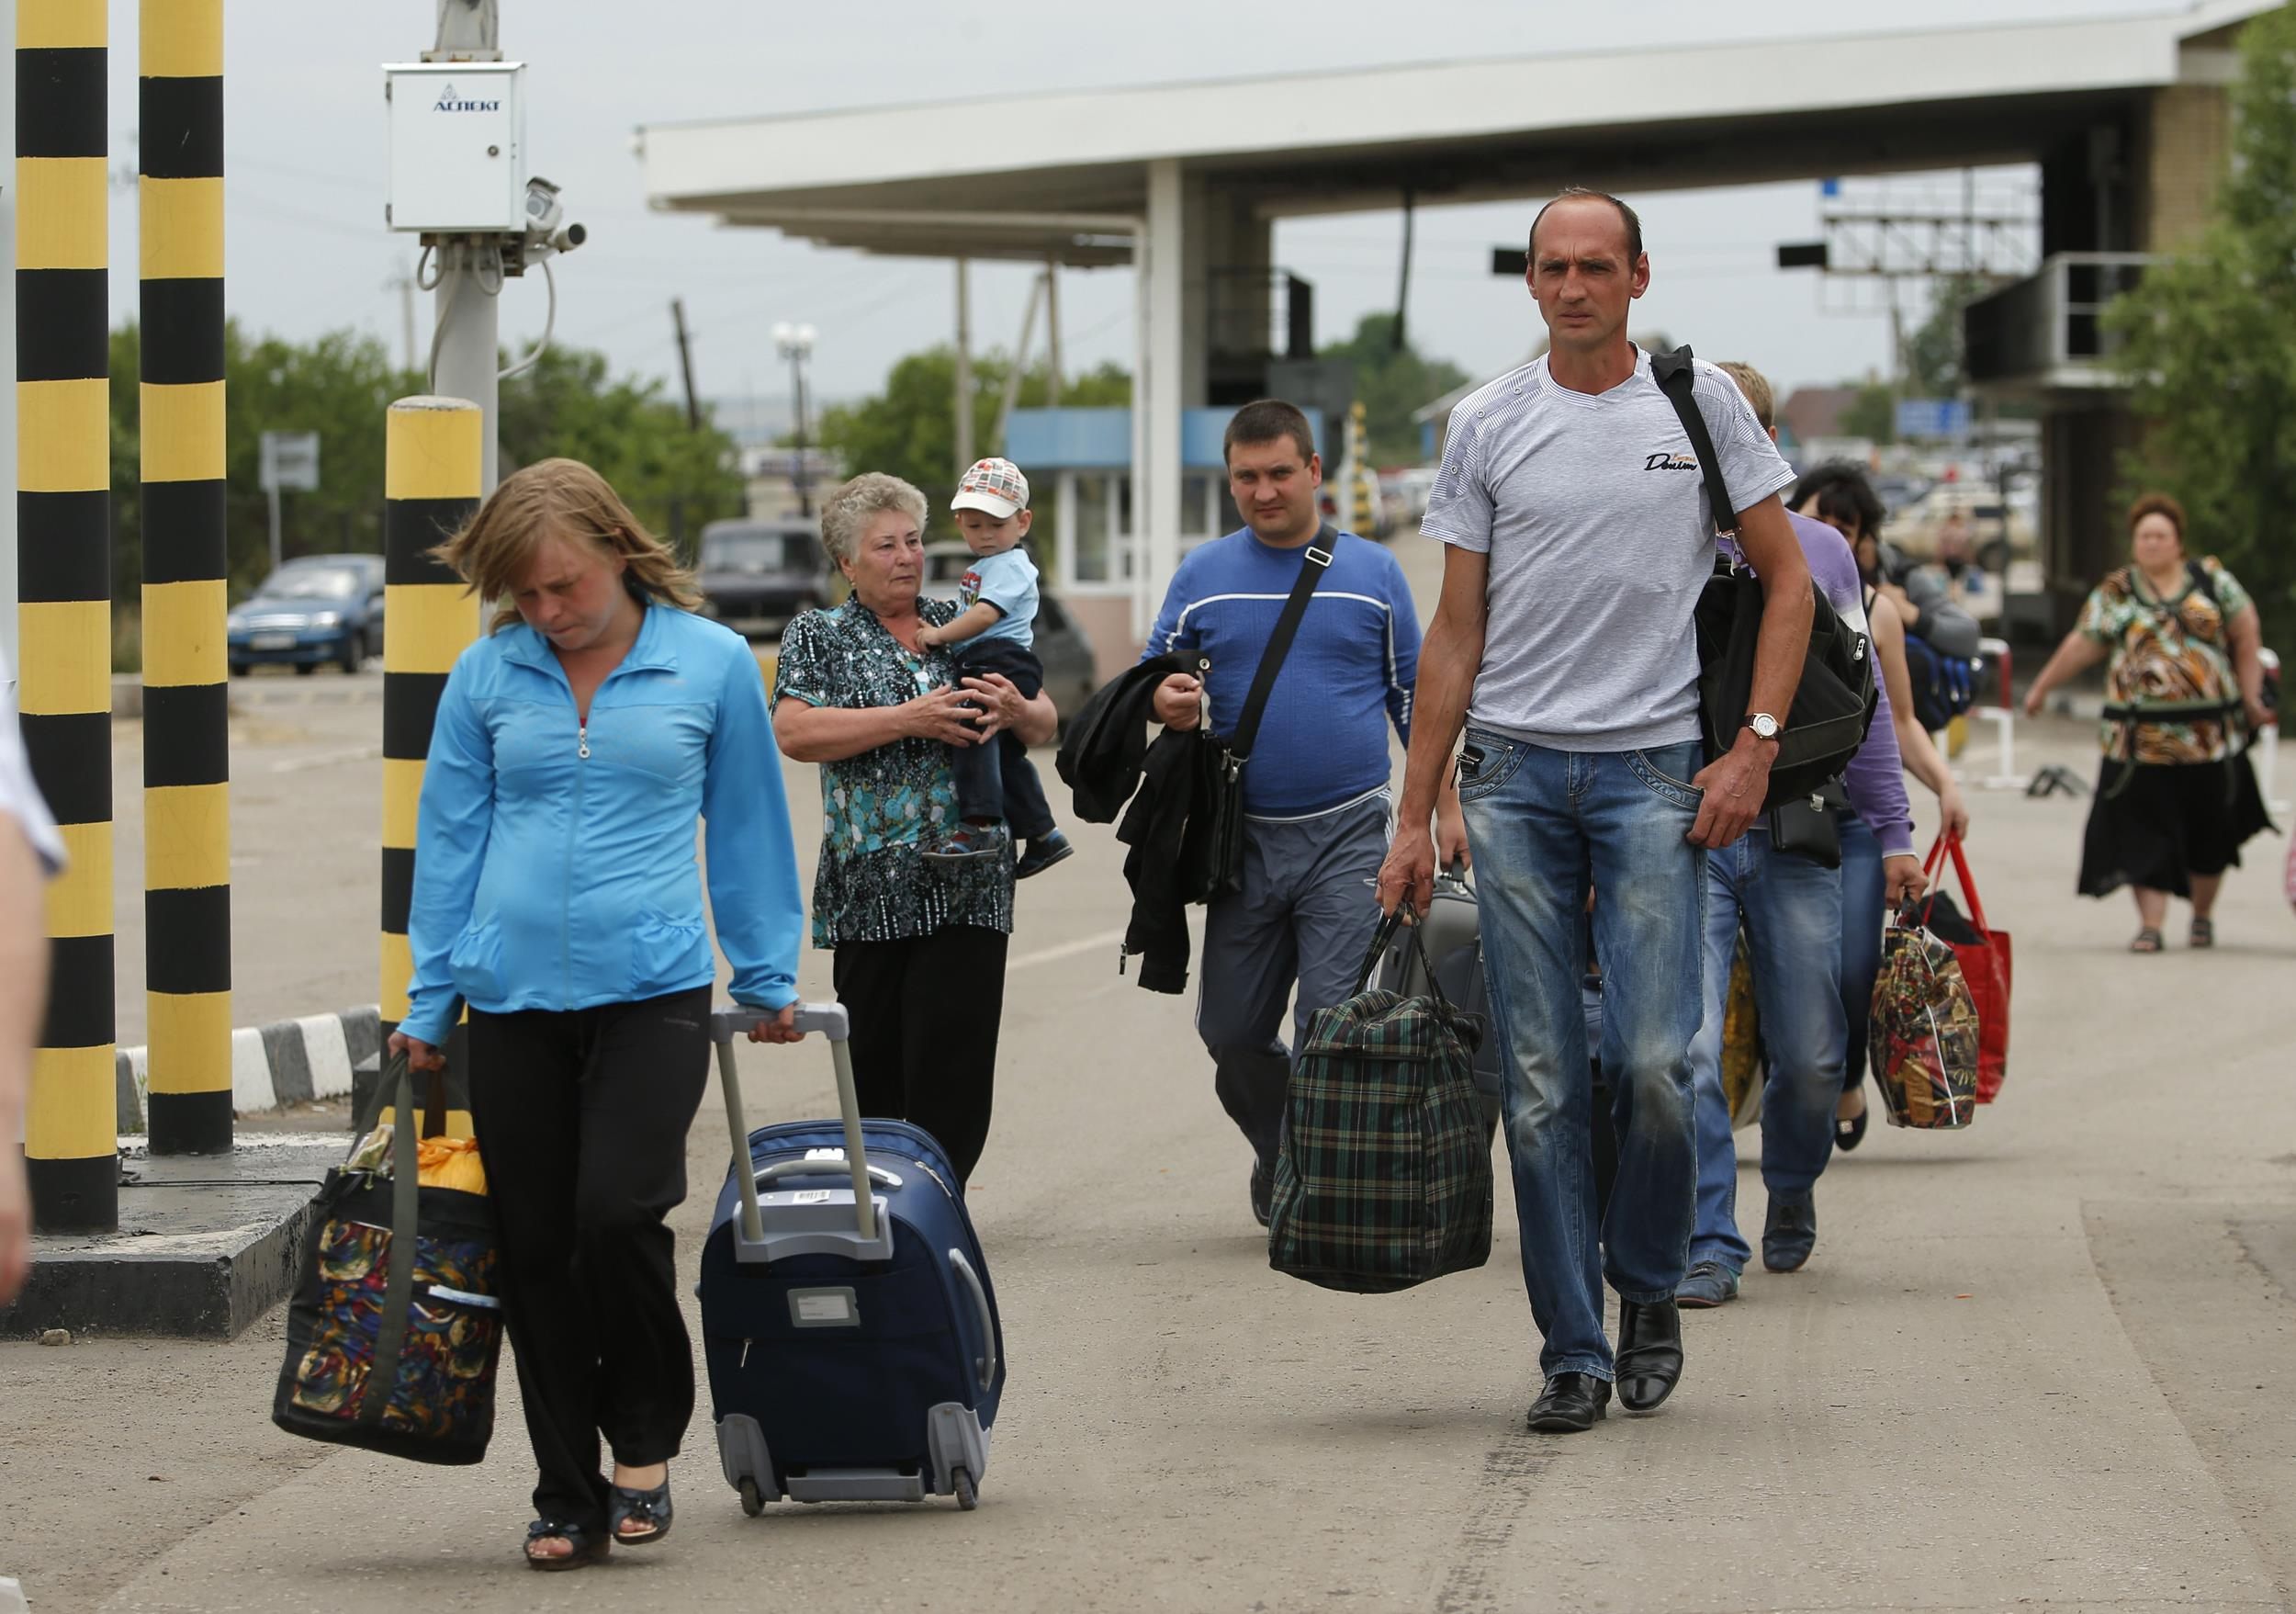 Image: People carry their belongings as they walk to cross the border into Russia at the Ukrainian-Russian border checkpoint in Izvaryne, Luhansk region, eastern Ukraine Thursday.